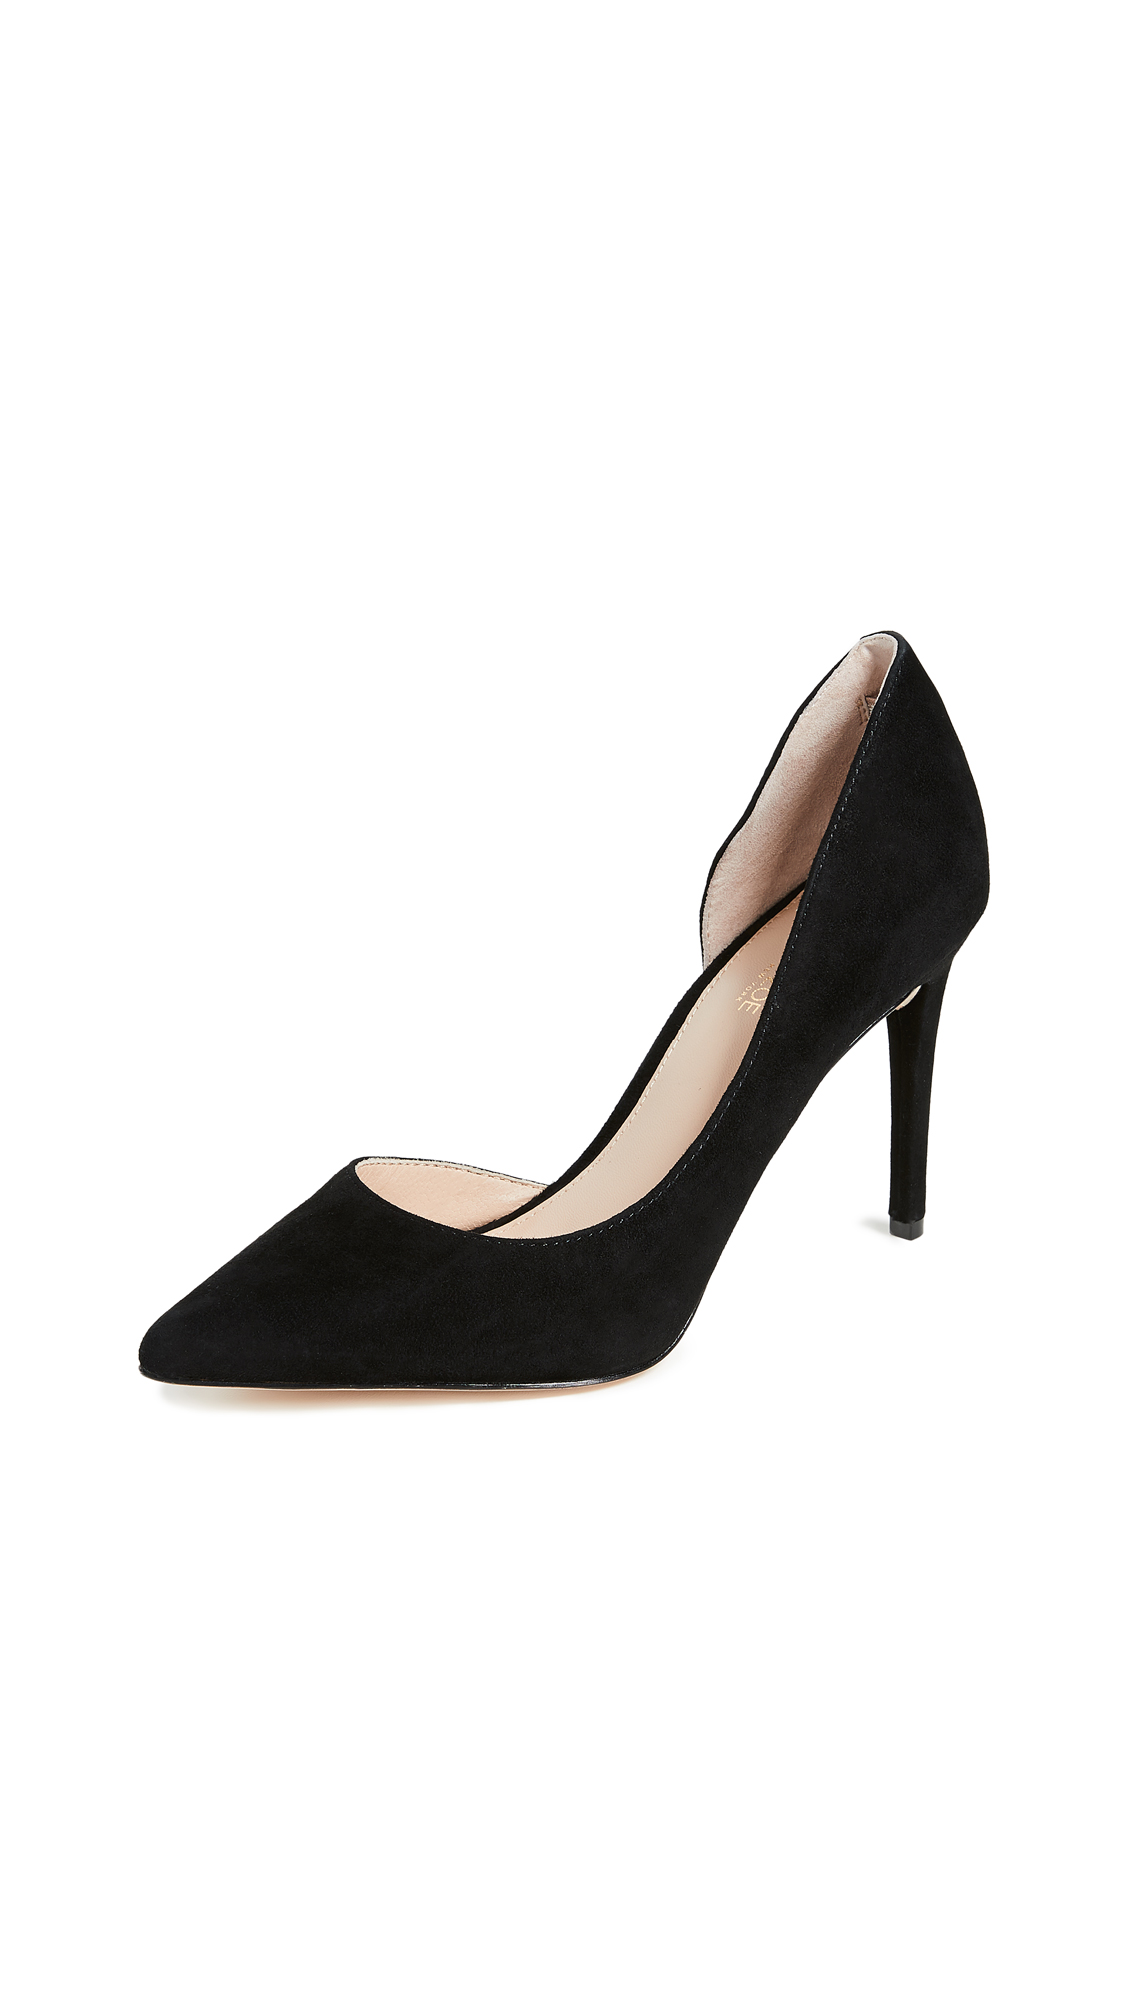 Rachel Zoe London Pumps